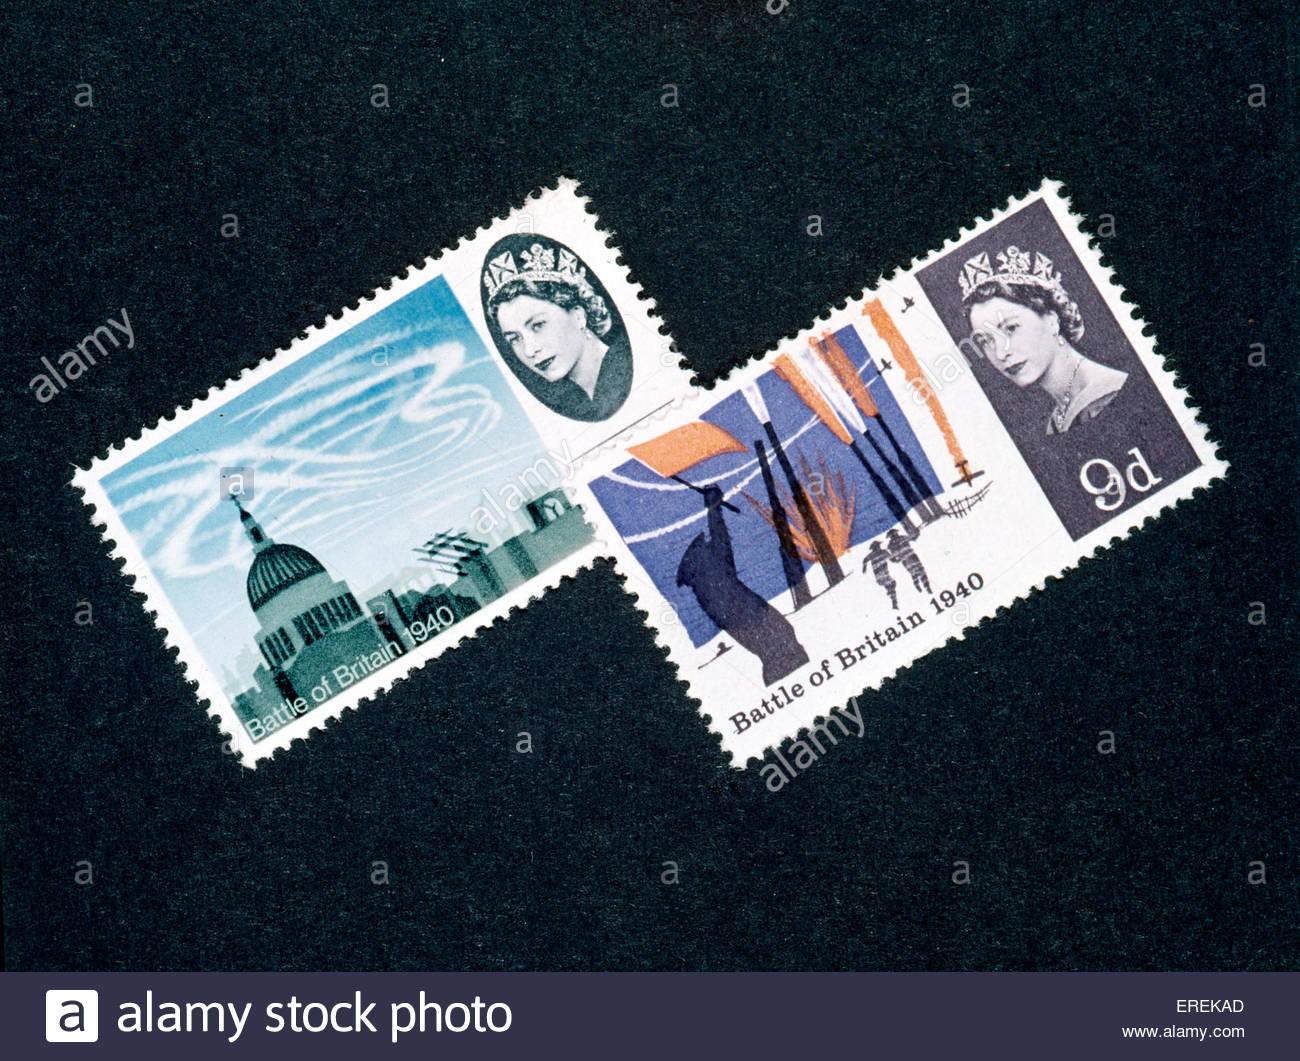 Battle of Britain stamps, commemorating events of Summer 1940. - Stock Image